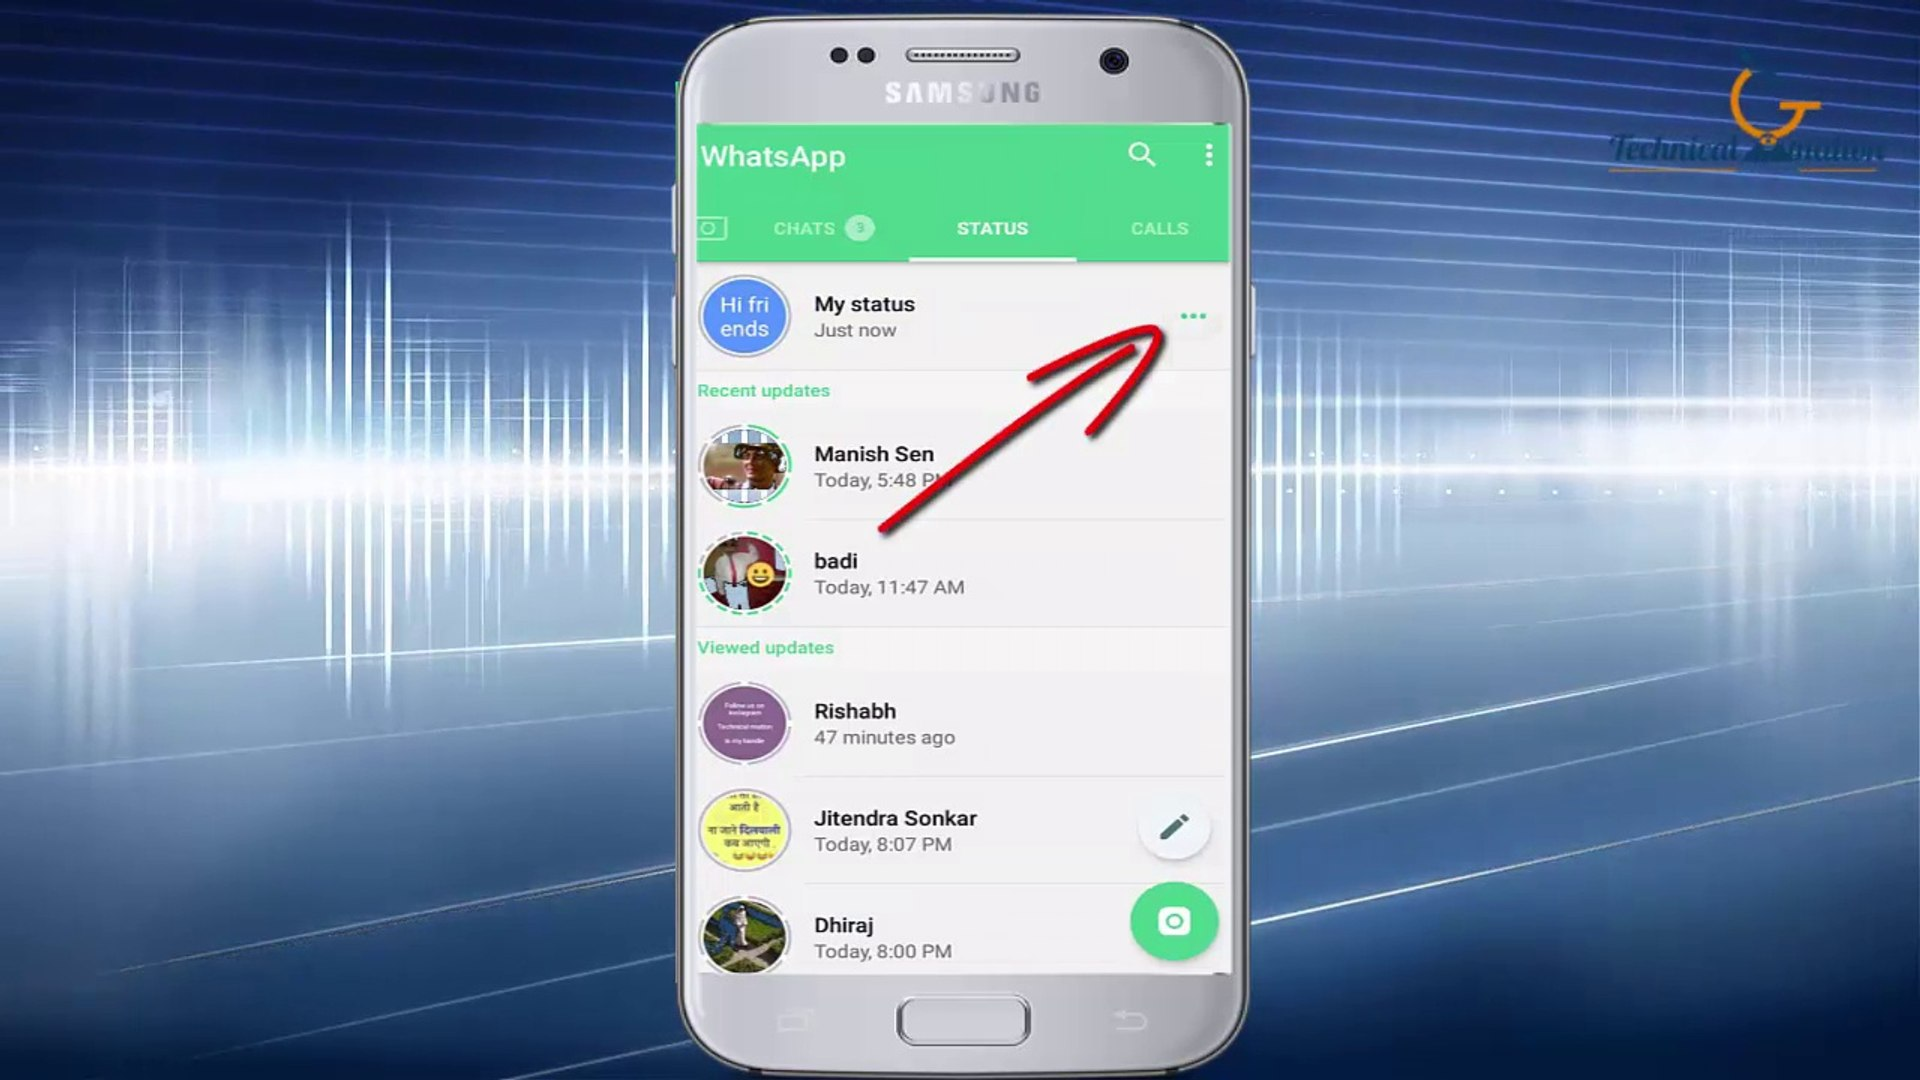 How to see whatsapp status without notifying